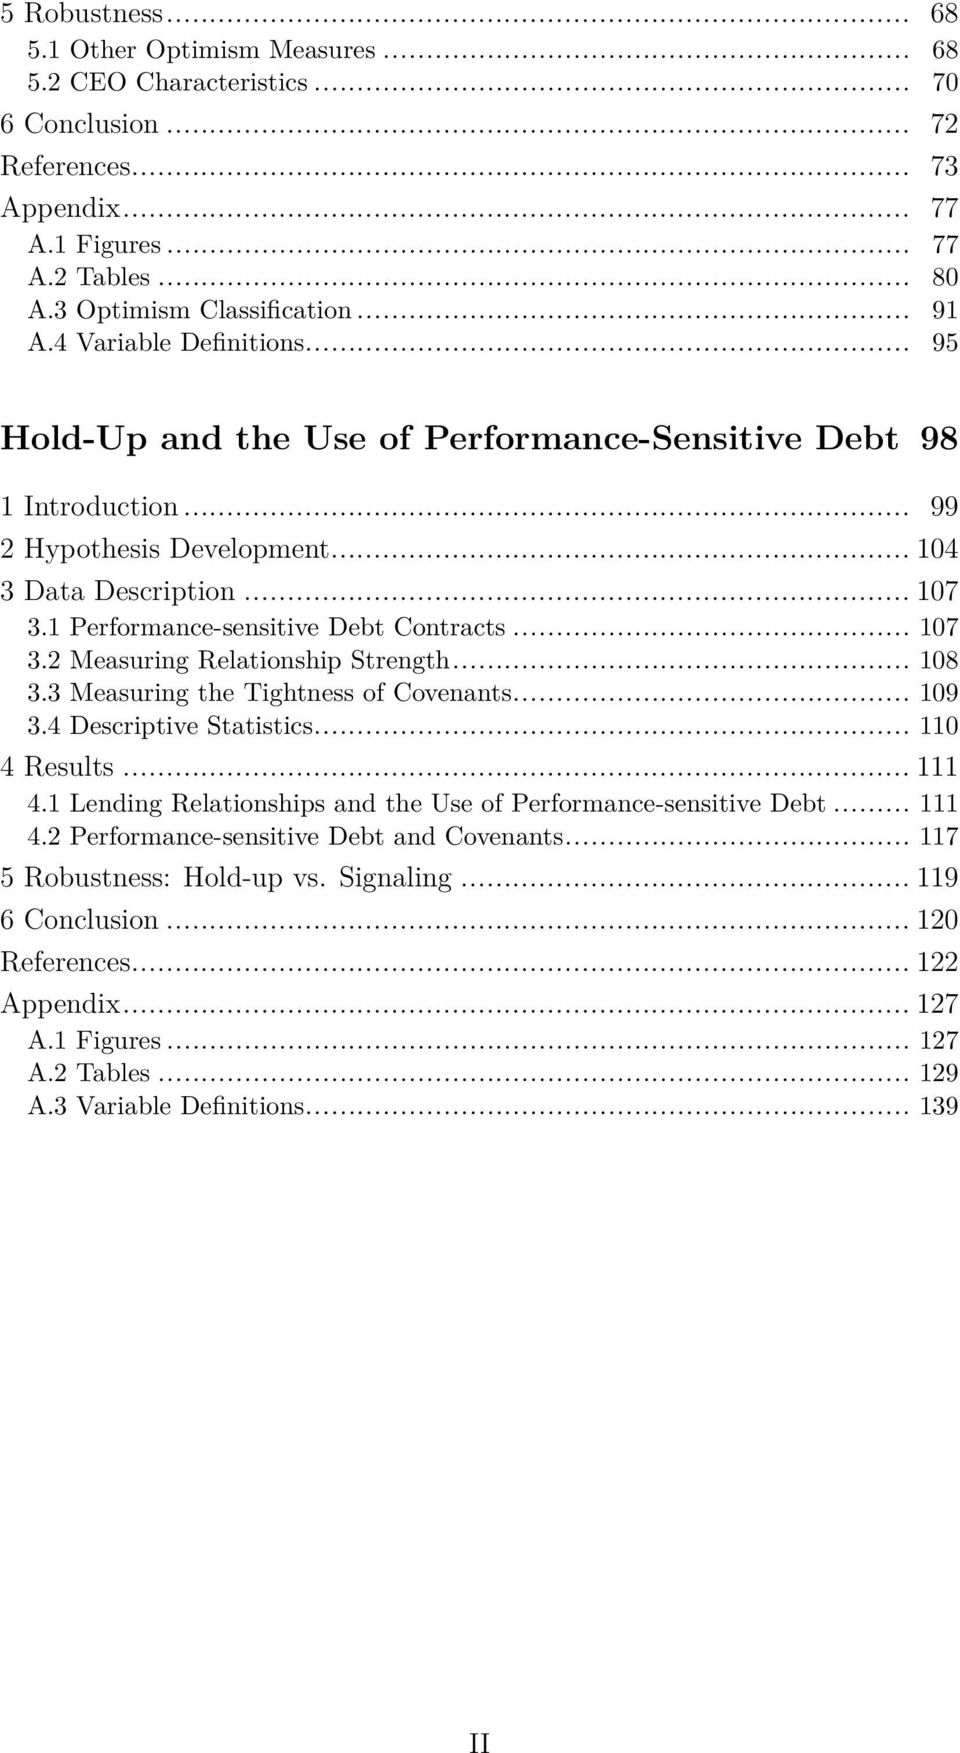 1 Performance-sensitive Debt Contracts... 107 3.2 Measuring Relationship Strength... 108 3.3 Measuring the Tightness of Covenants... 109 3.4 Descriptive Statistics... 110 4 Results... 111 4.